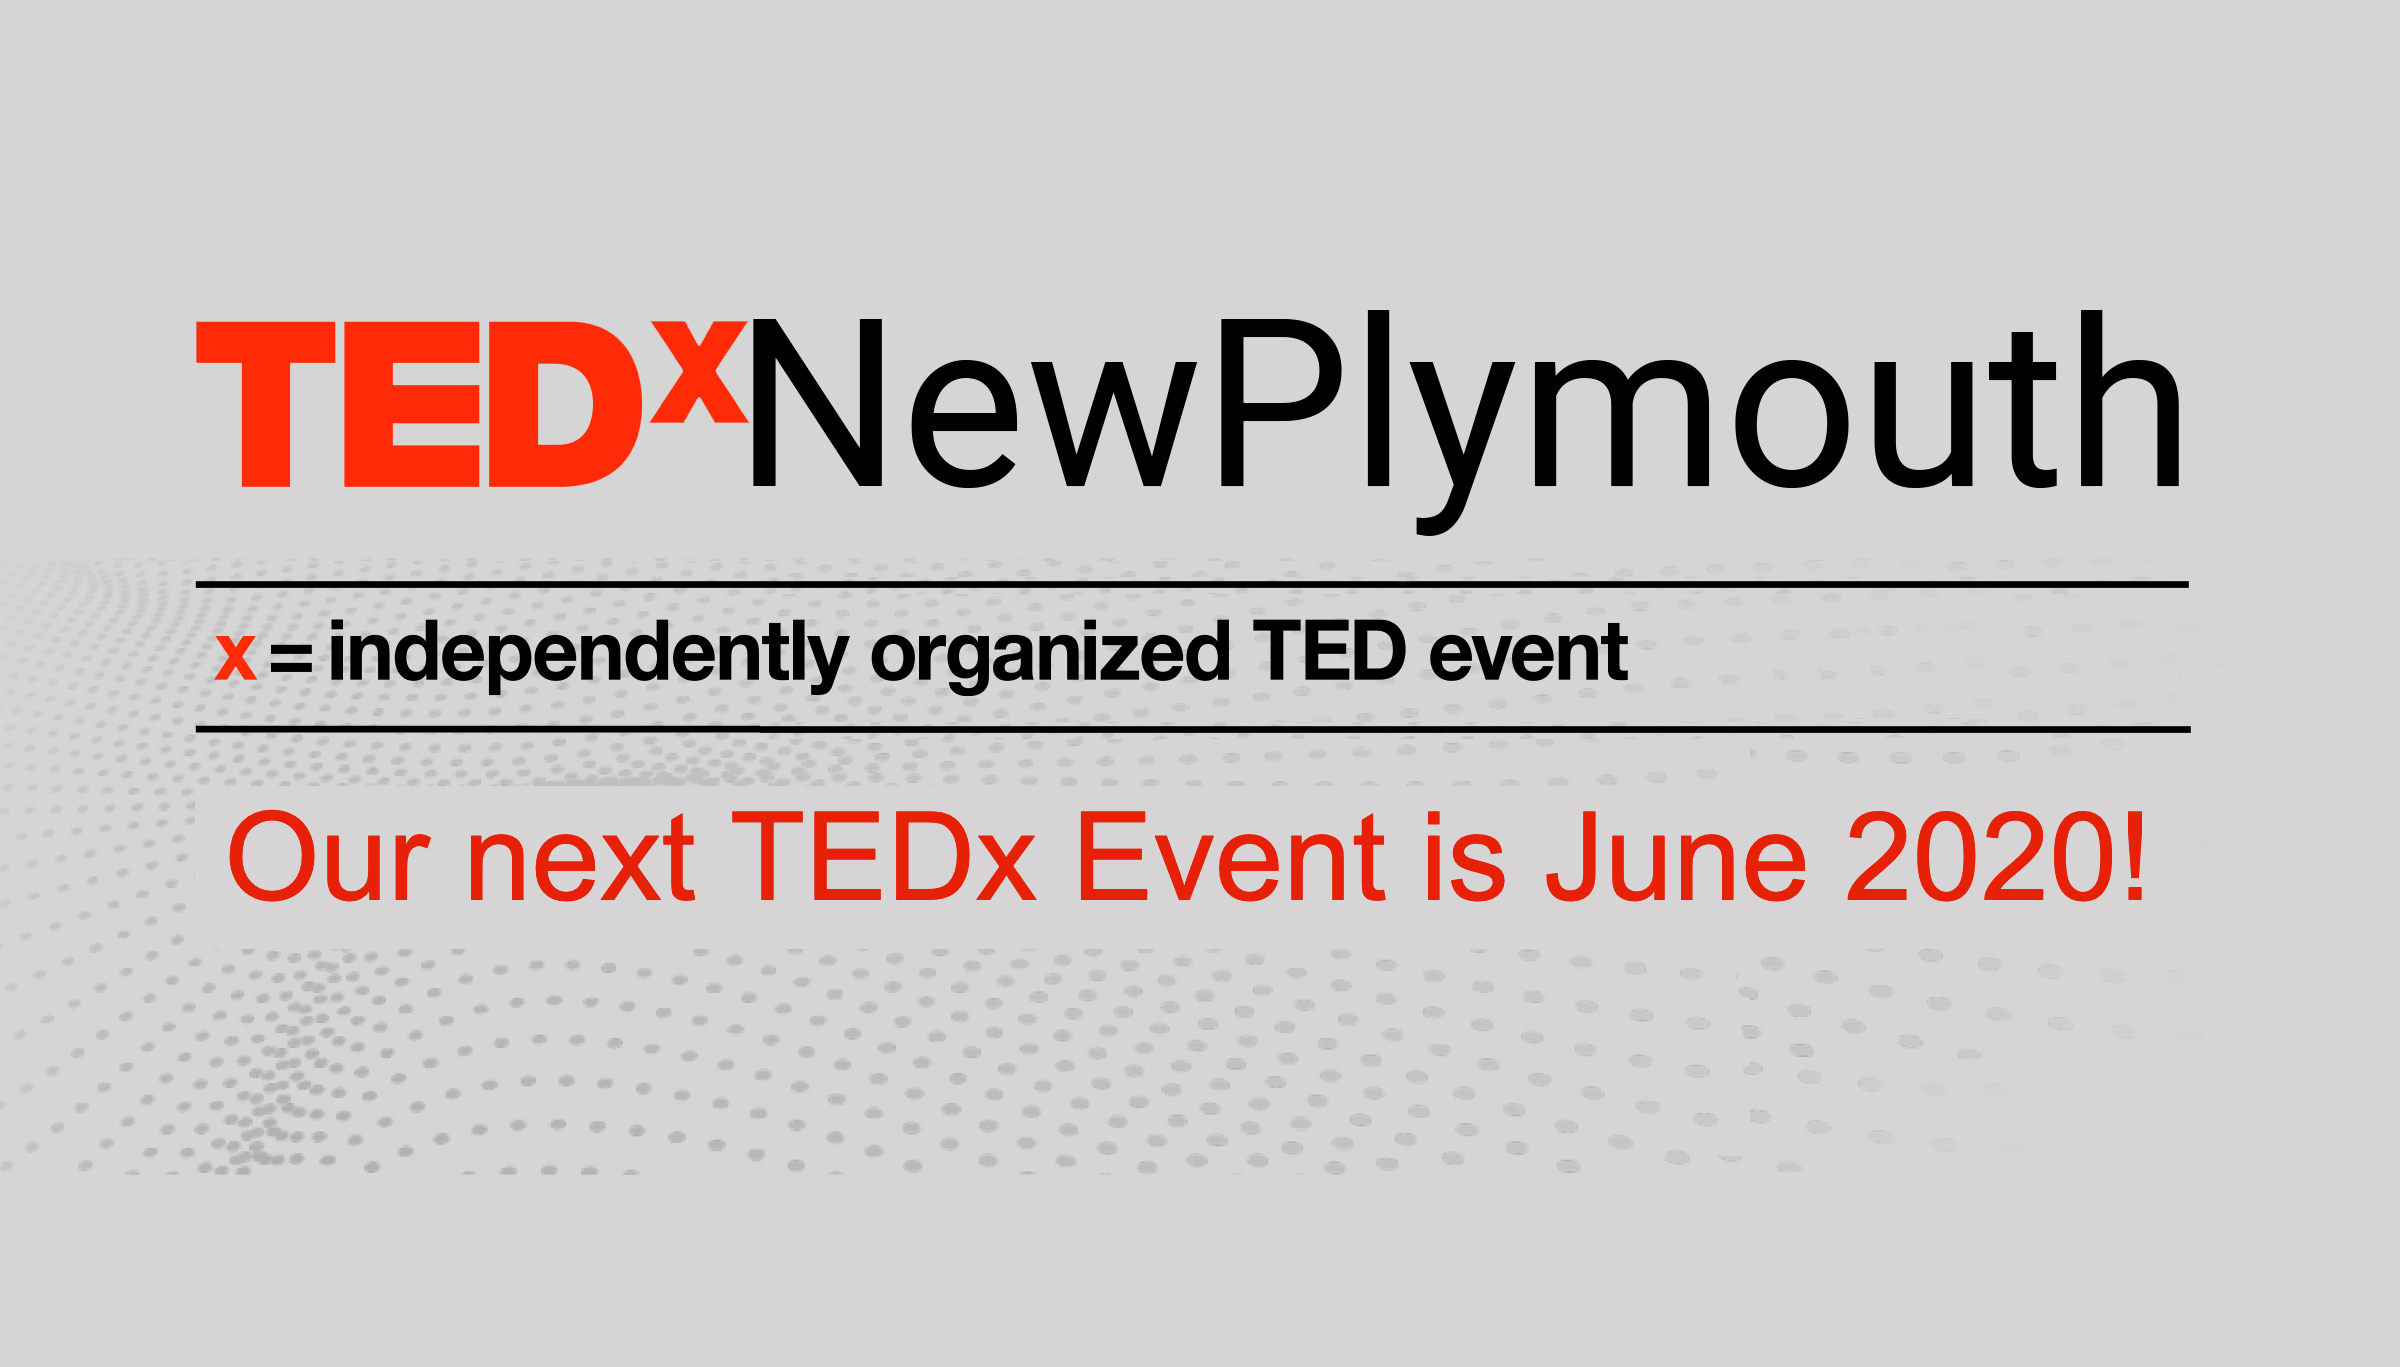 TEDxNewPlymouth - x = independently organized TED event - 22nd July 2018 at 4th Wall Theatre - 10 AM to 4PM (lunch and afternoon tea provided)